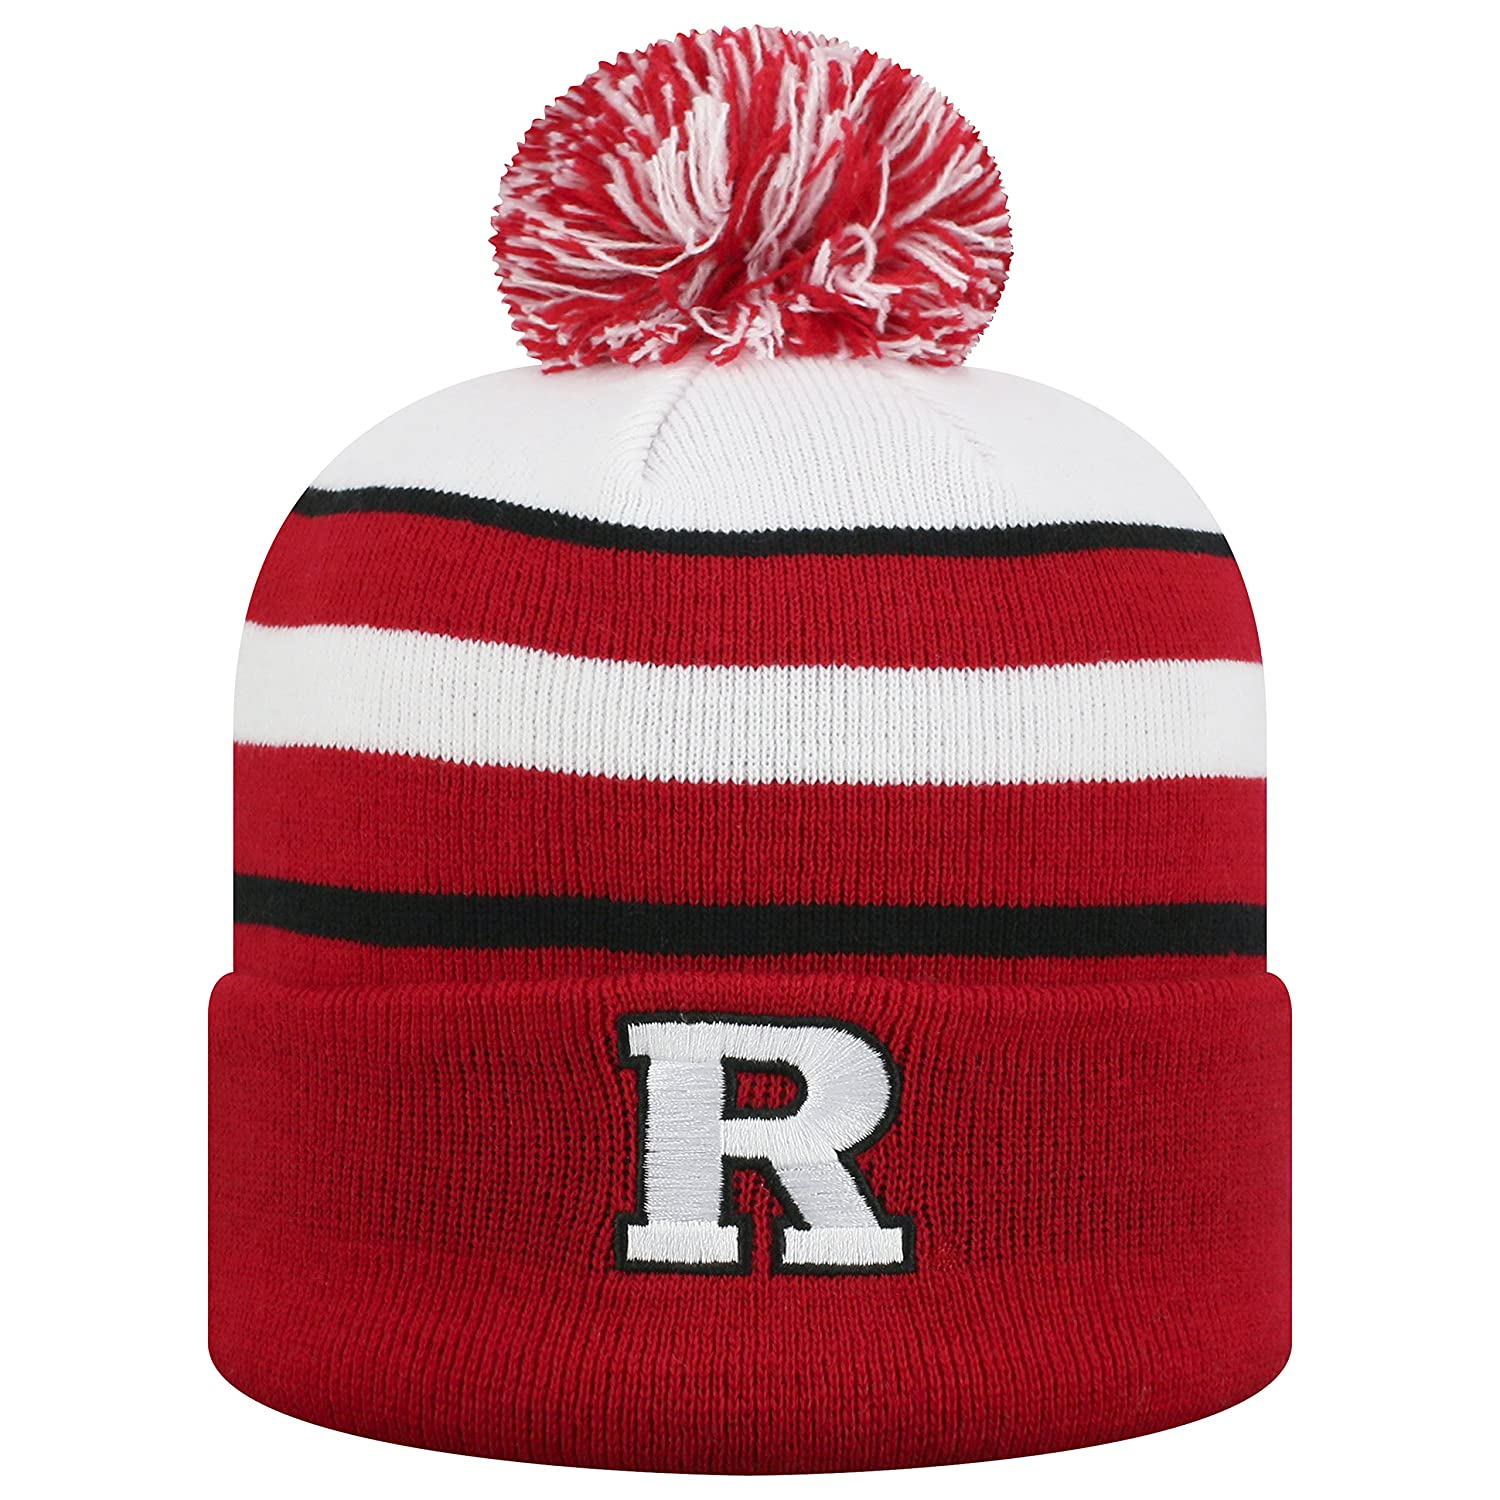 Top of the World Rutgers Scarlet Knights Official NCAA Cuffed Knit Skyview Stocking Stretch Sock Hat Cap Beanie 479750